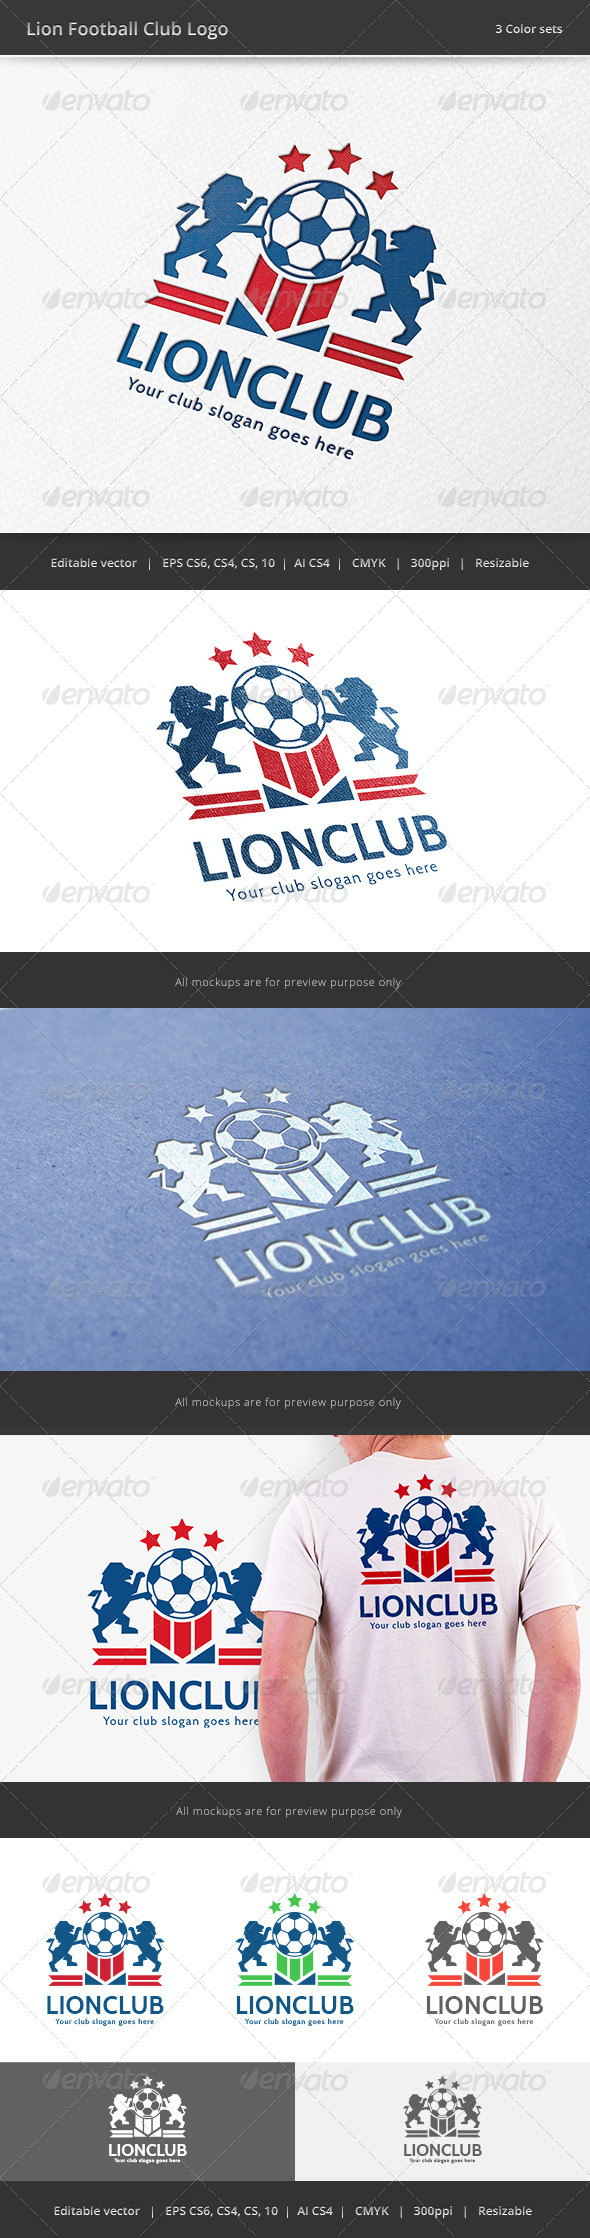 GraphicRiver Lion Football Club Logo 7848475